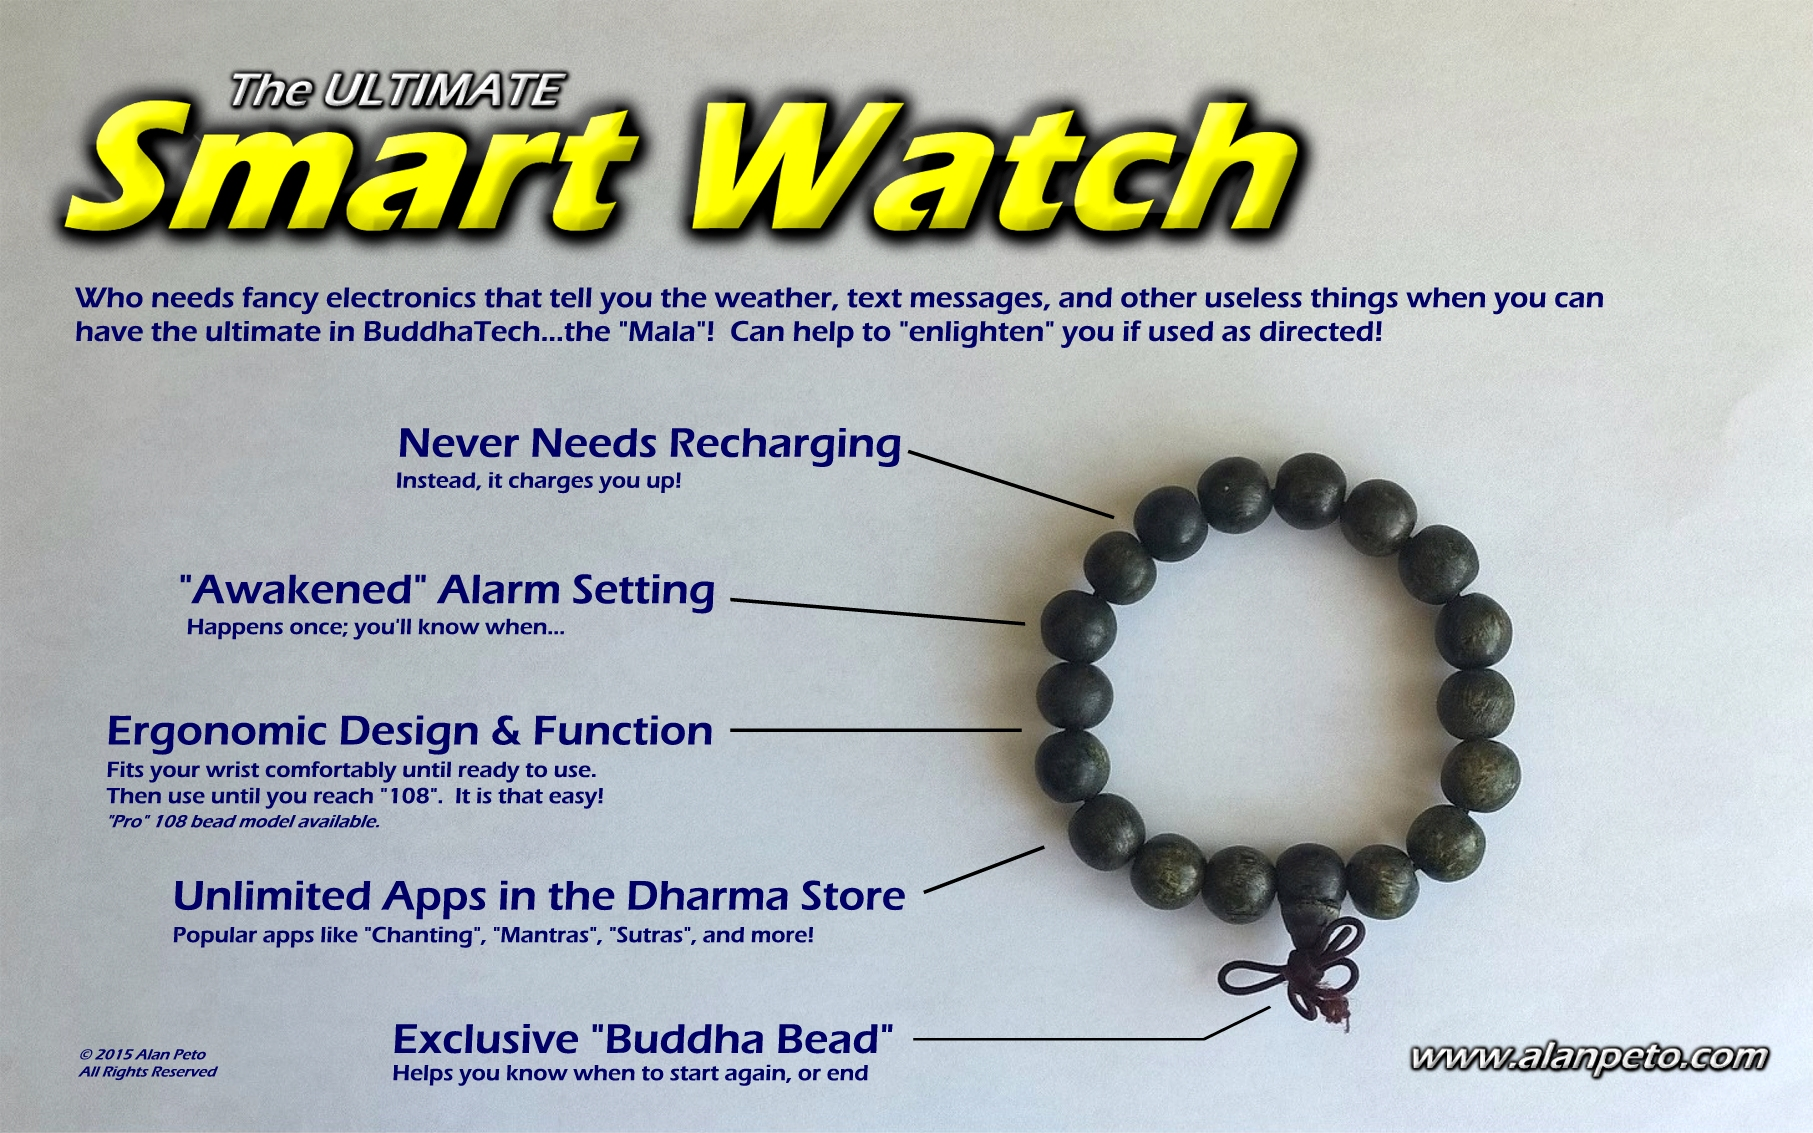 The Ultimate Buddhist Smart Watch by Alan Peto